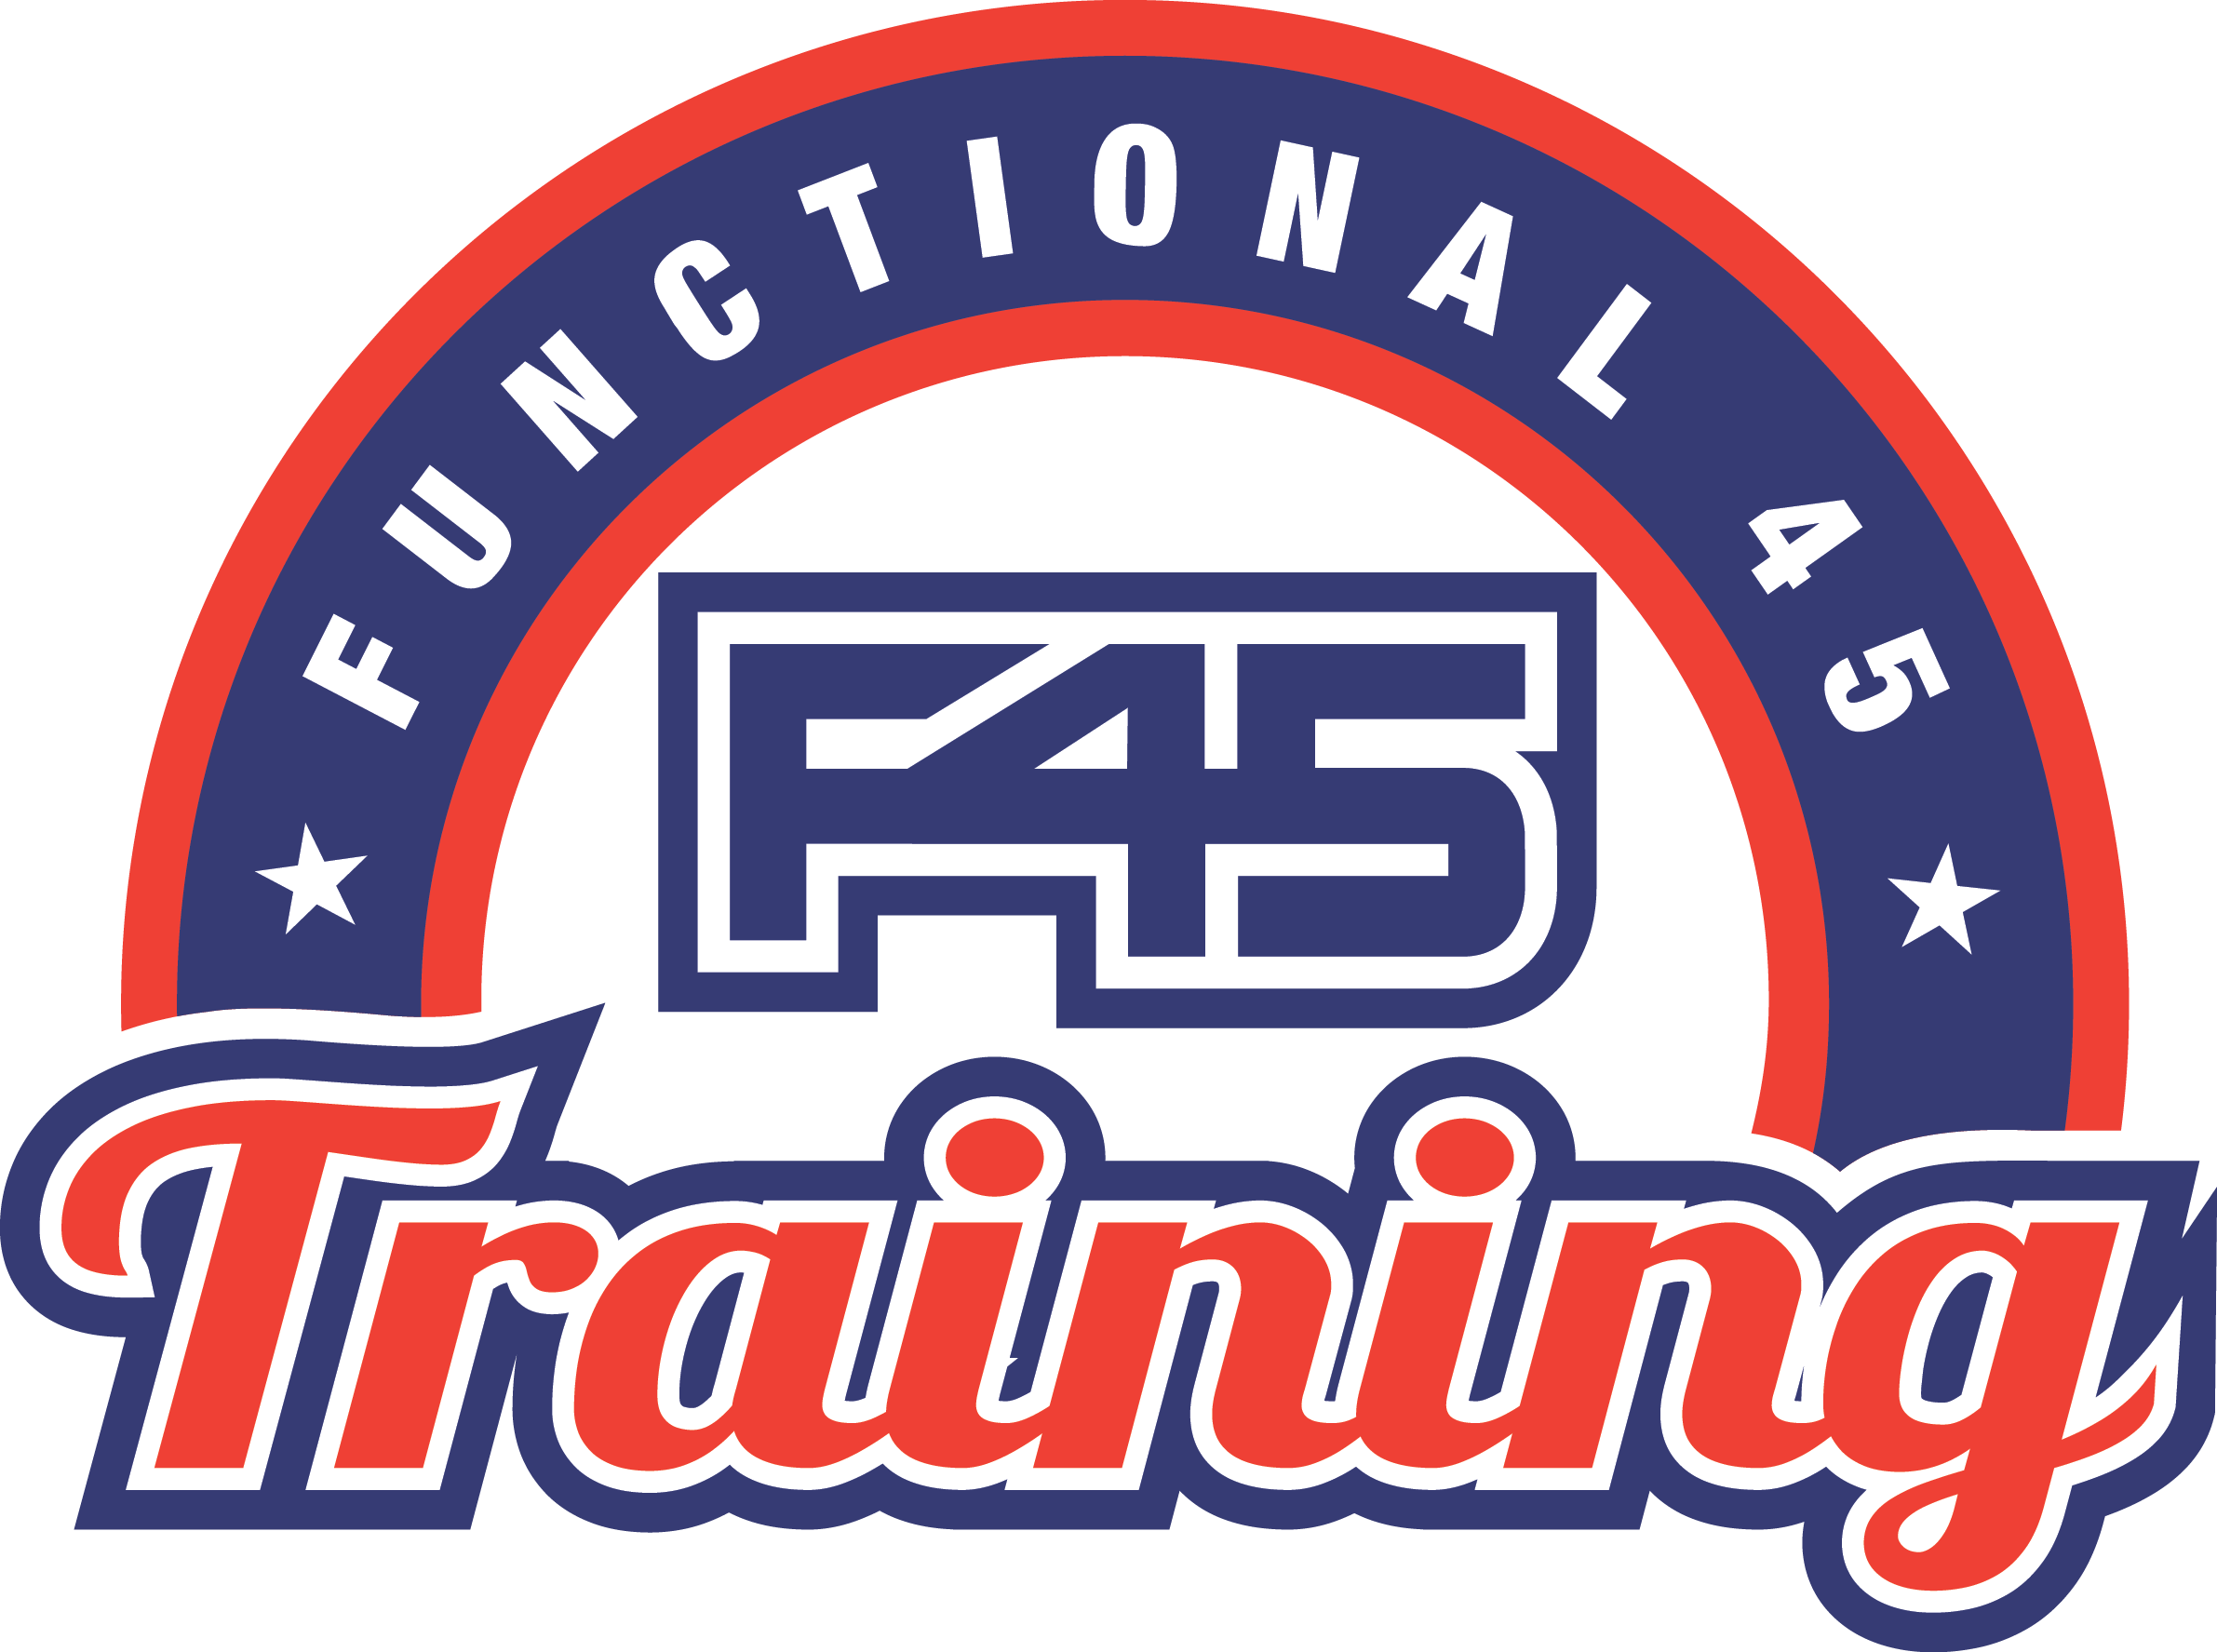 F45_TRAINING_LOGO_TRANSPARENT